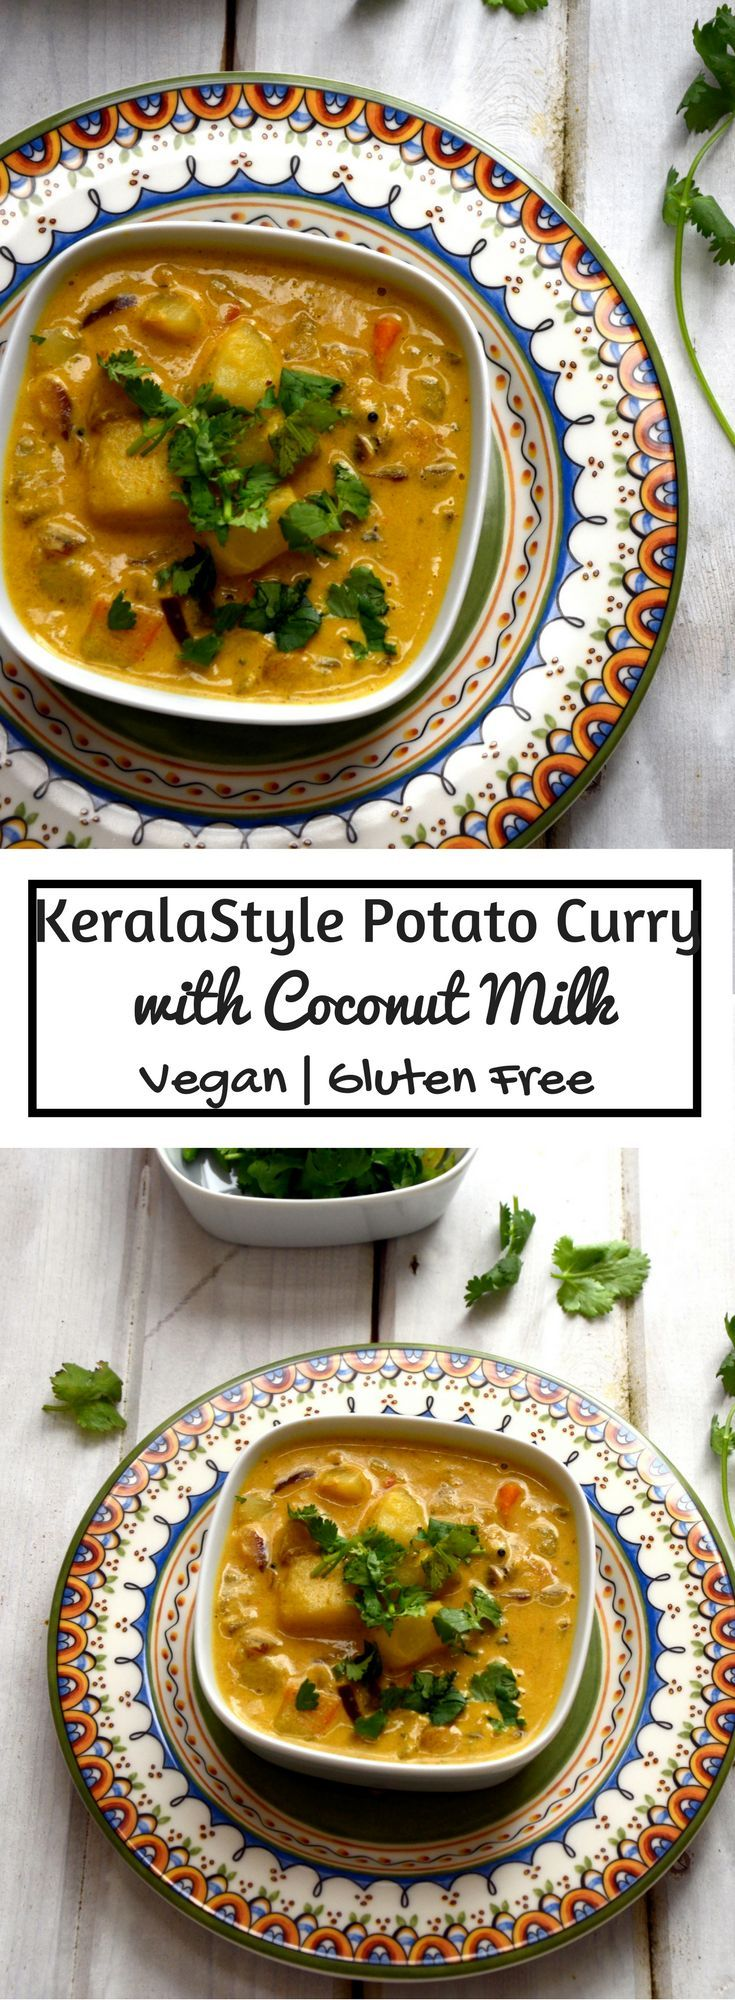 Best 25 kerala food ideas on pinterest coconut rice recipe kerala style potato curry with coconut milk vegan gluten free forumfinder Image collections